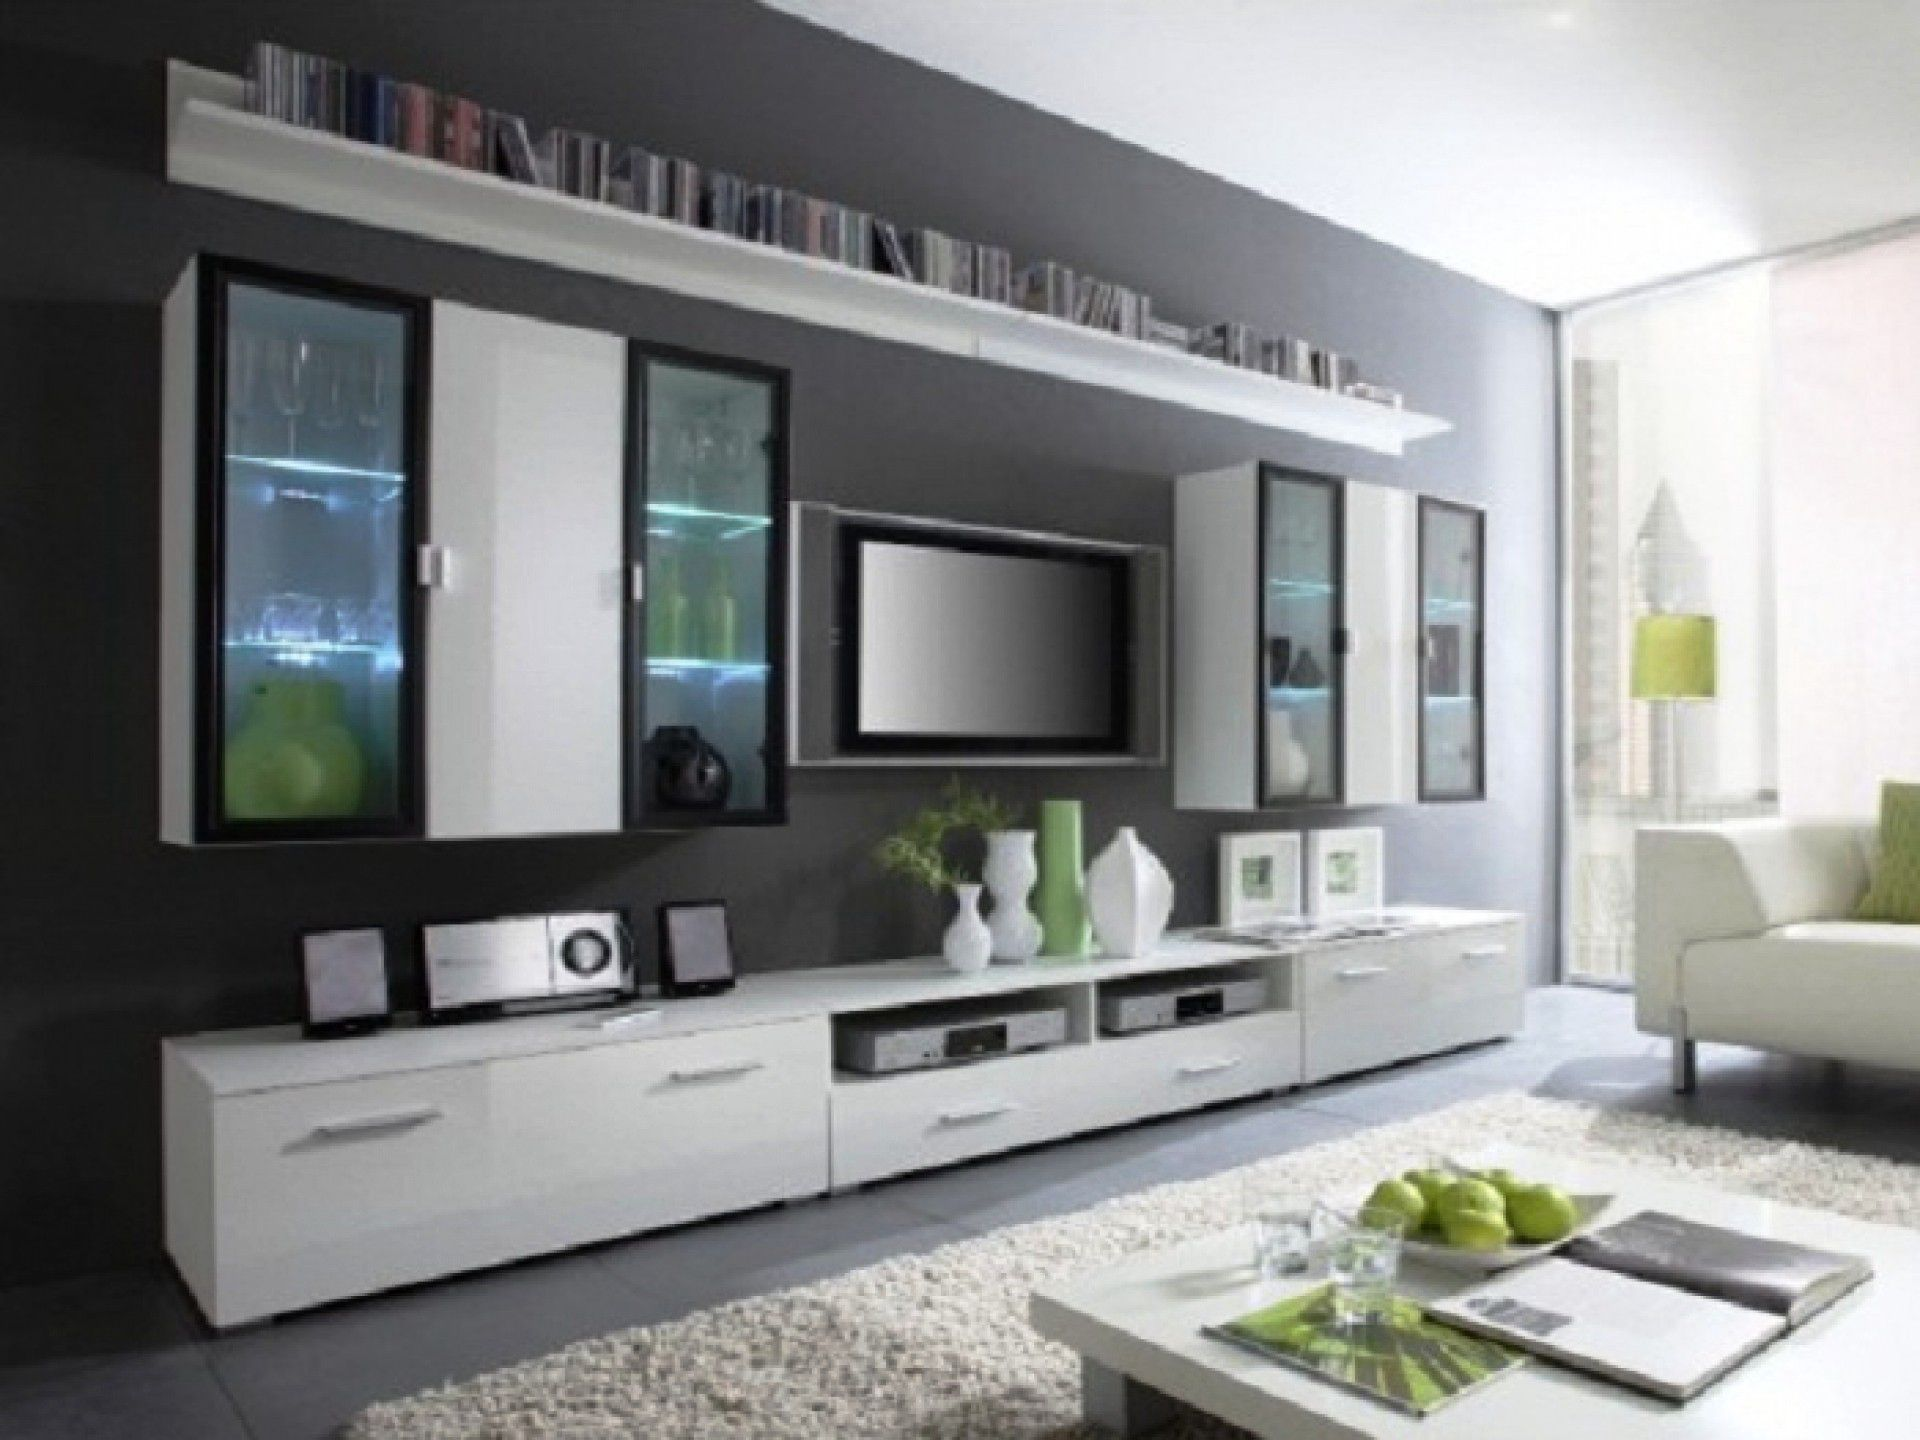 Mikealson Sister Living Room Tv Tv Wall Unit Tv Wall Design